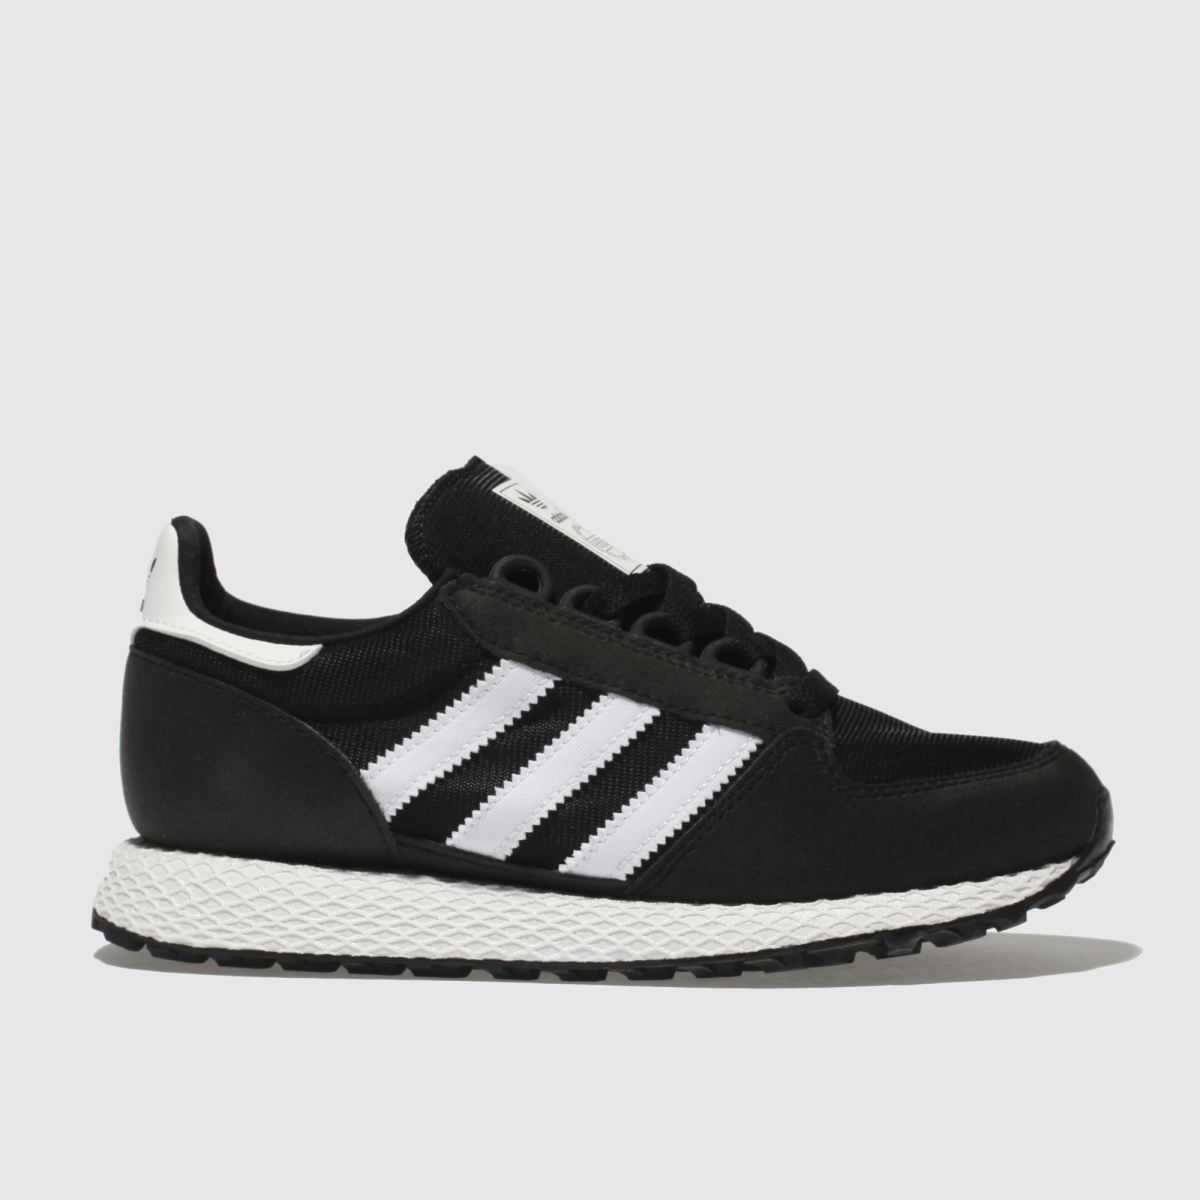 Adidas Black & White Forest Grove Unisex Youth Youth